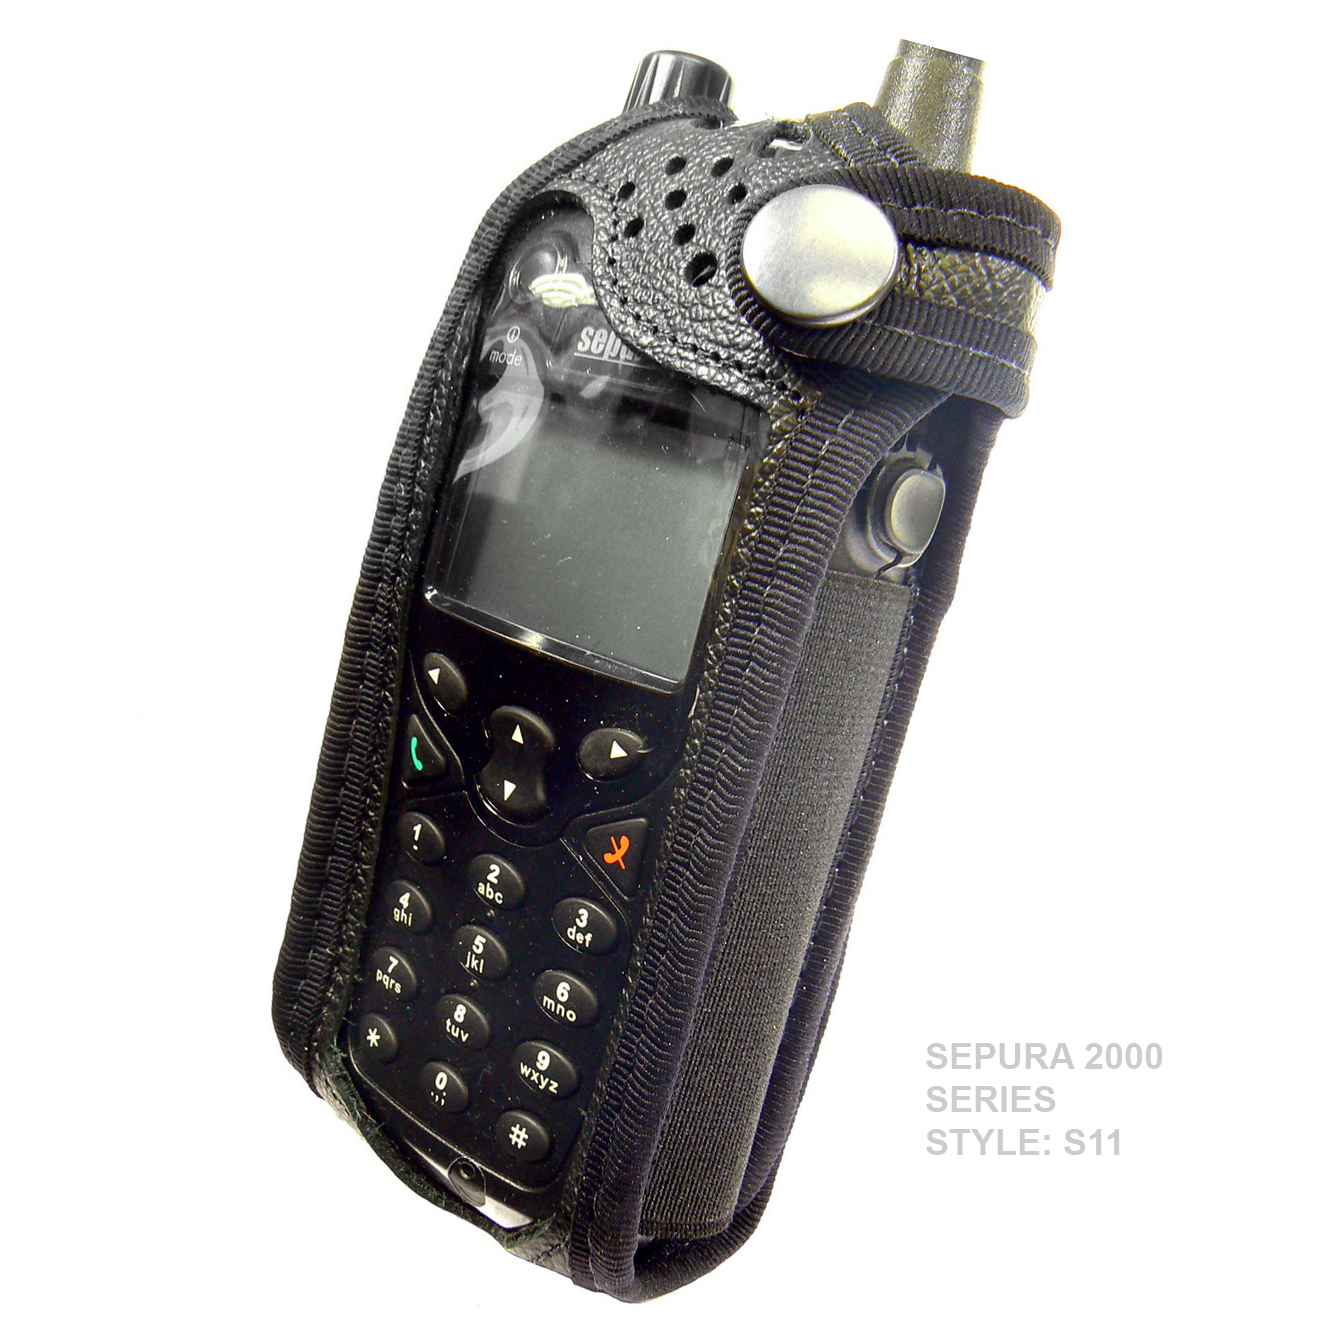 Sepura SRP2000 Tetra Radio Case Leather with Click-On